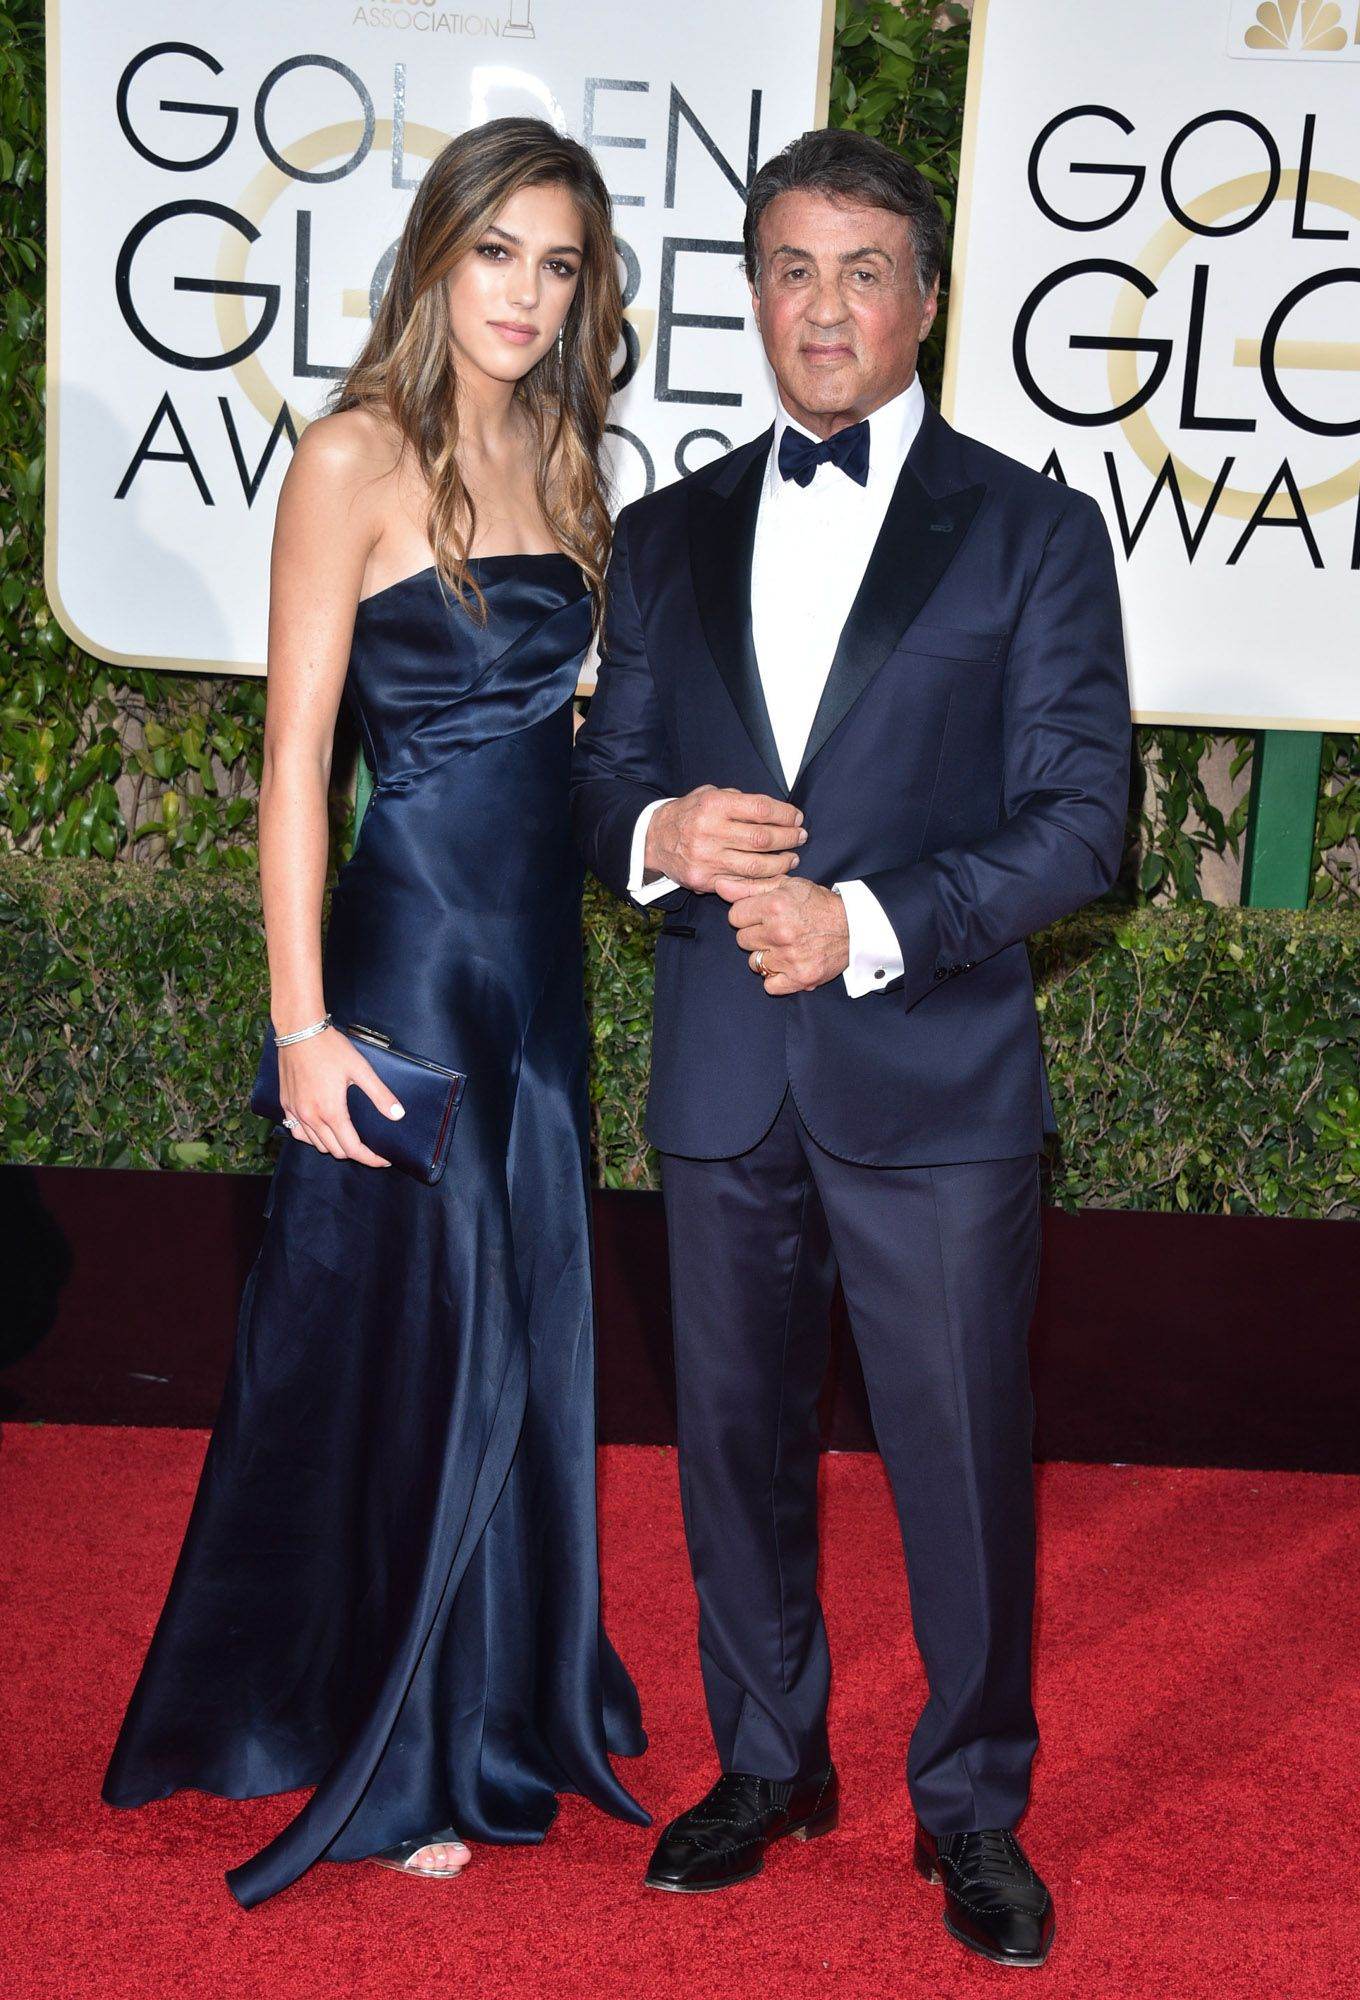 Scarlet Stallone and Sylvester Stallone at the 73rd Annual Golden Globe Awards held at The Beverly Hilton Hotel on January 10, 2016 in Beverly Hills, California. | Photo: Getty Images